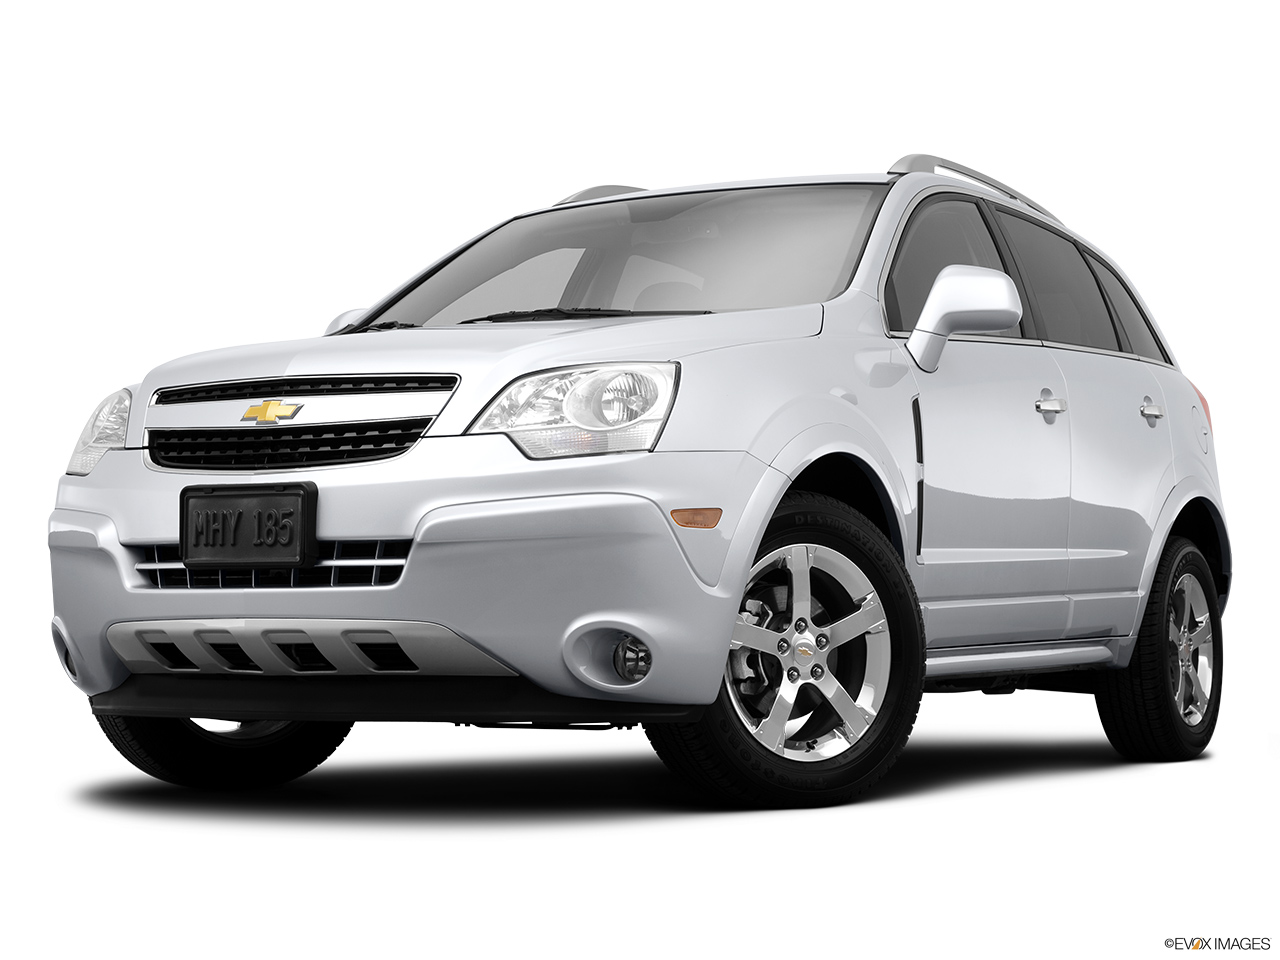 All Chevy 2014 chevrolet suv : 8867_st1280_090.jpg